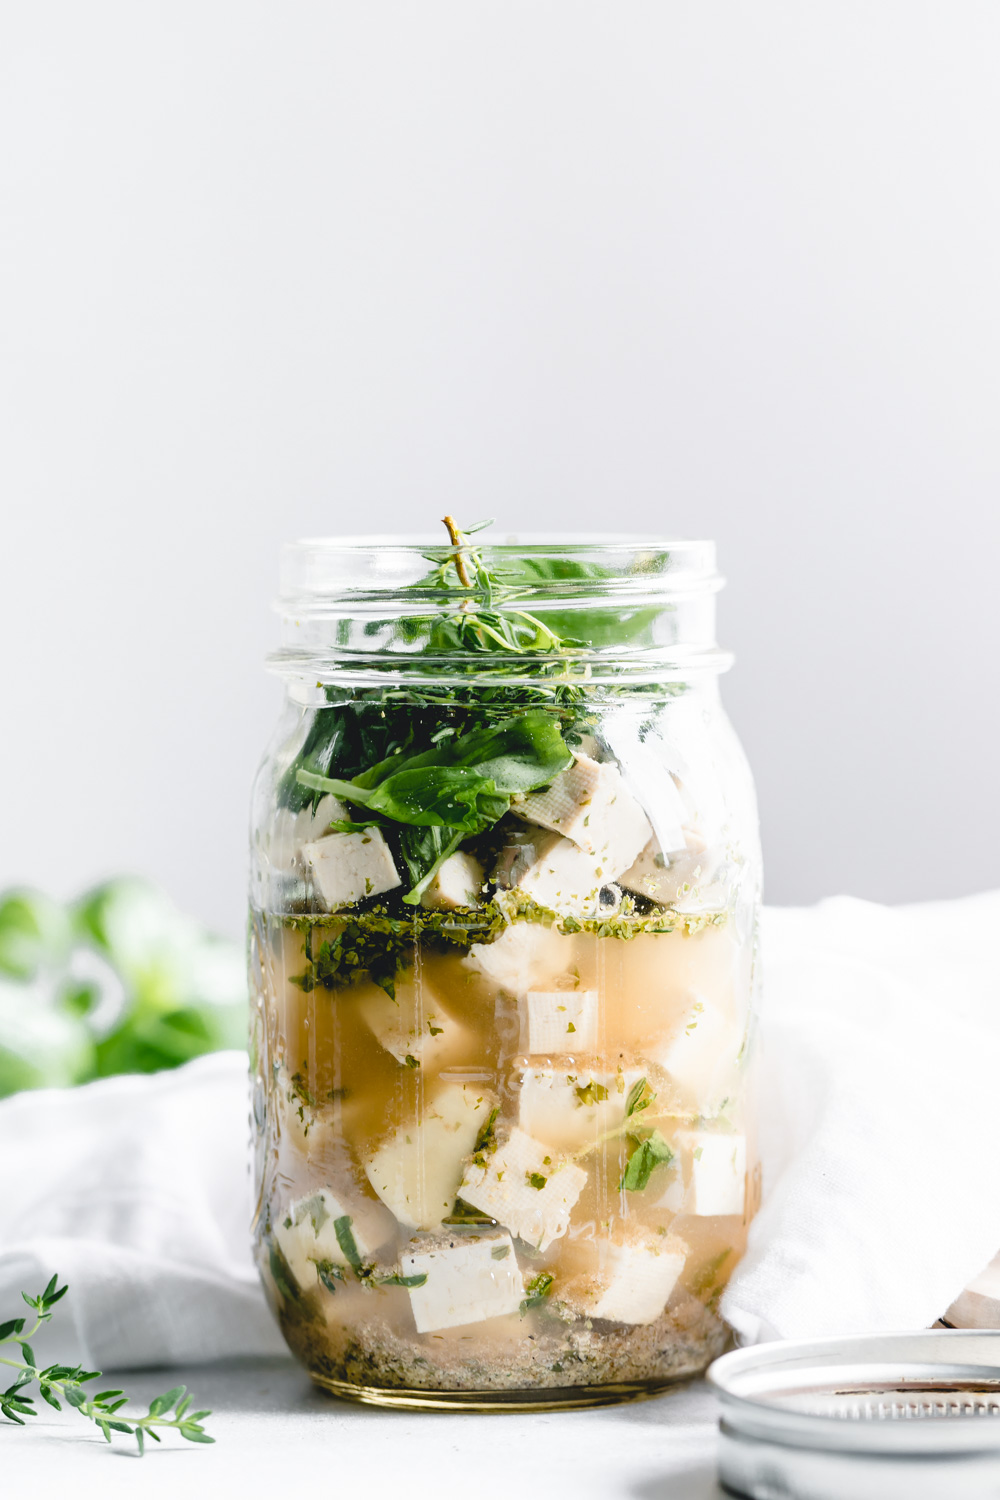 vegan feta cheese in glass jar with herbs with a white backdrop